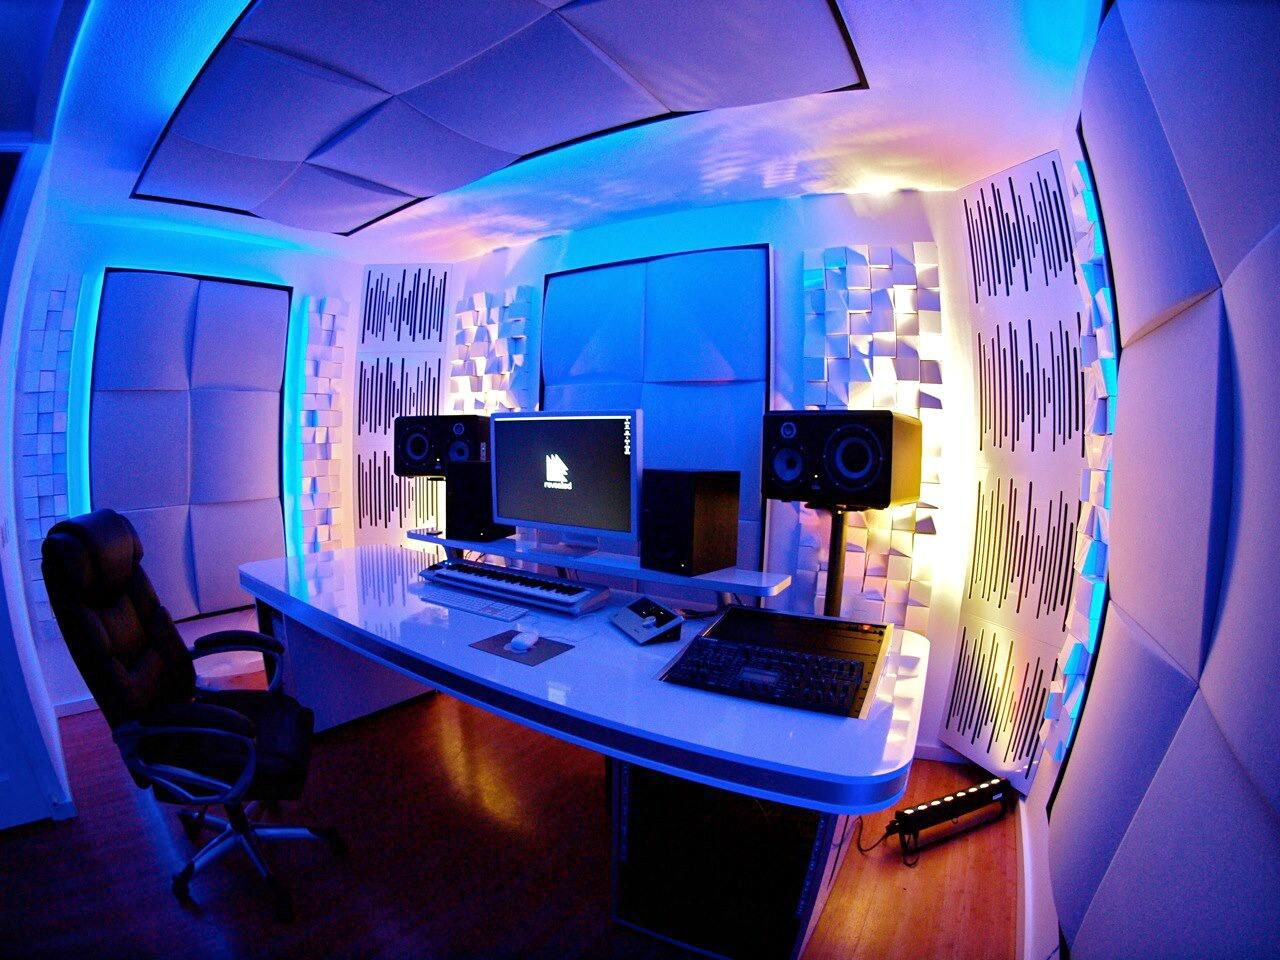 Hardwell on Twitter Finally the new Hardwell studio is finished httptcoTFz6t62PhC